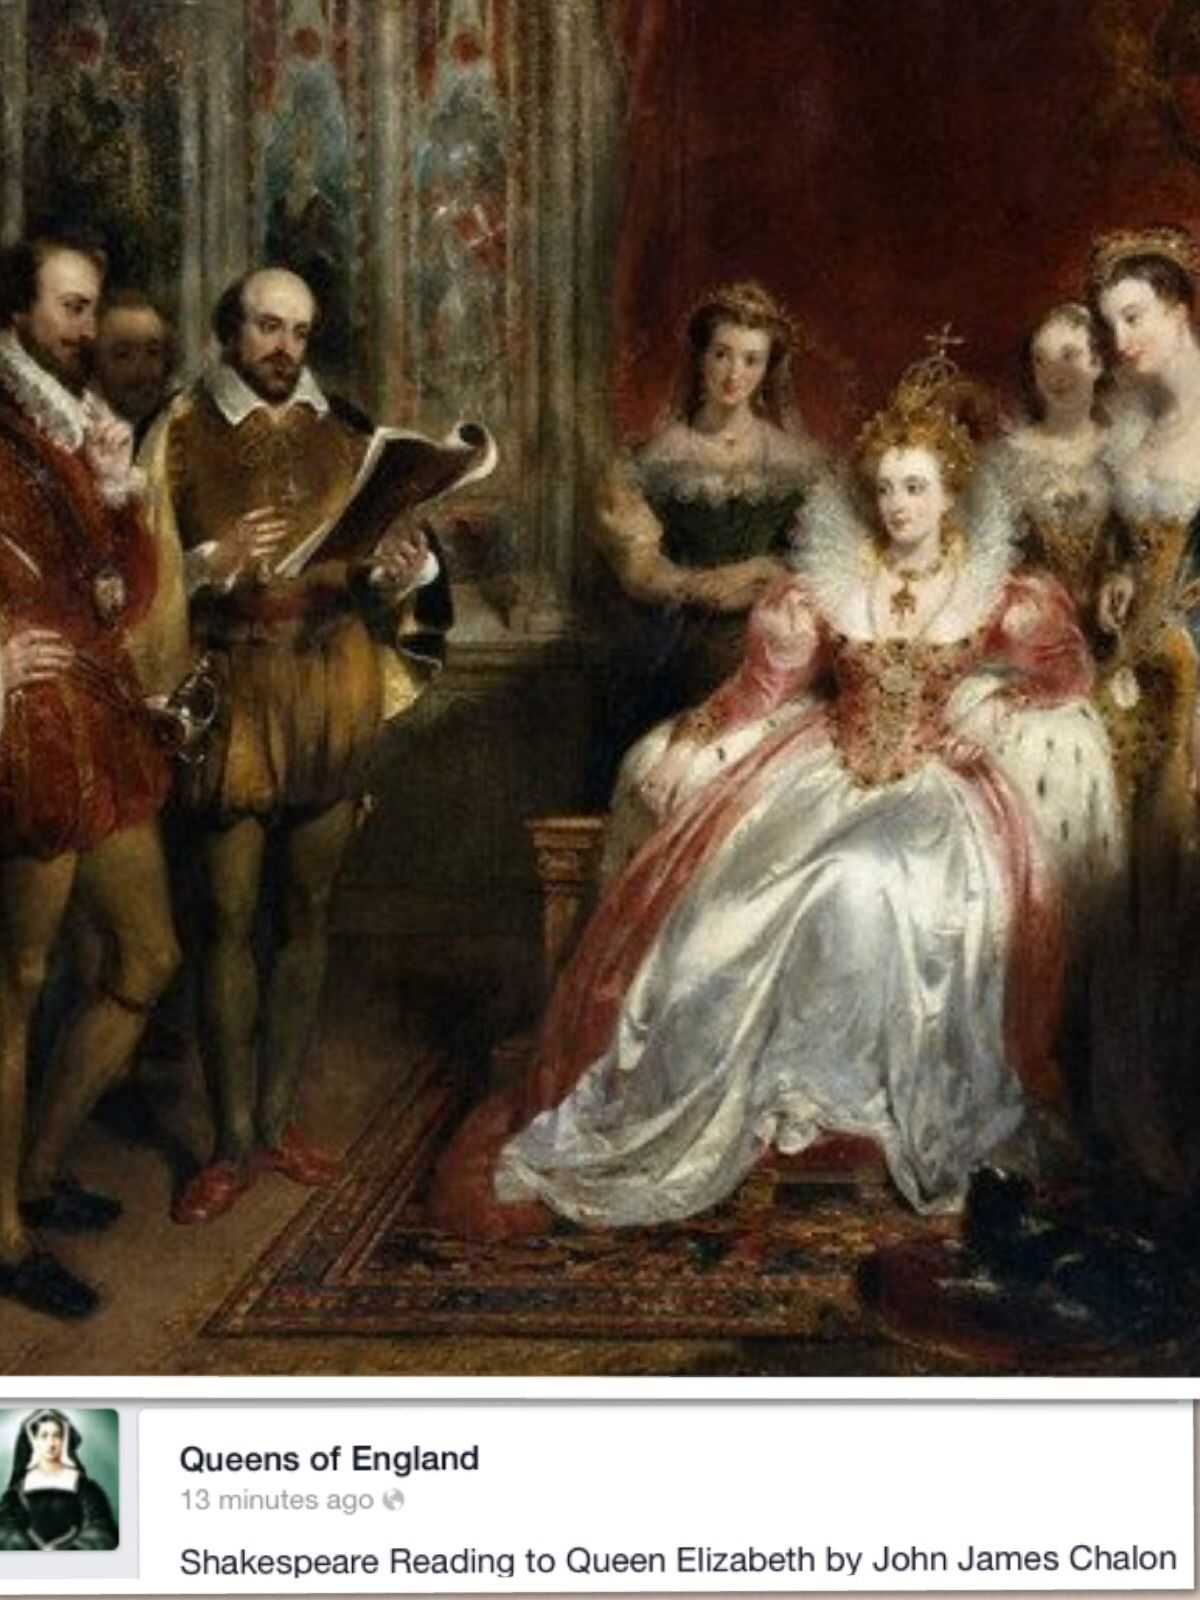 Queen Elizabeth l and William Shakespeare